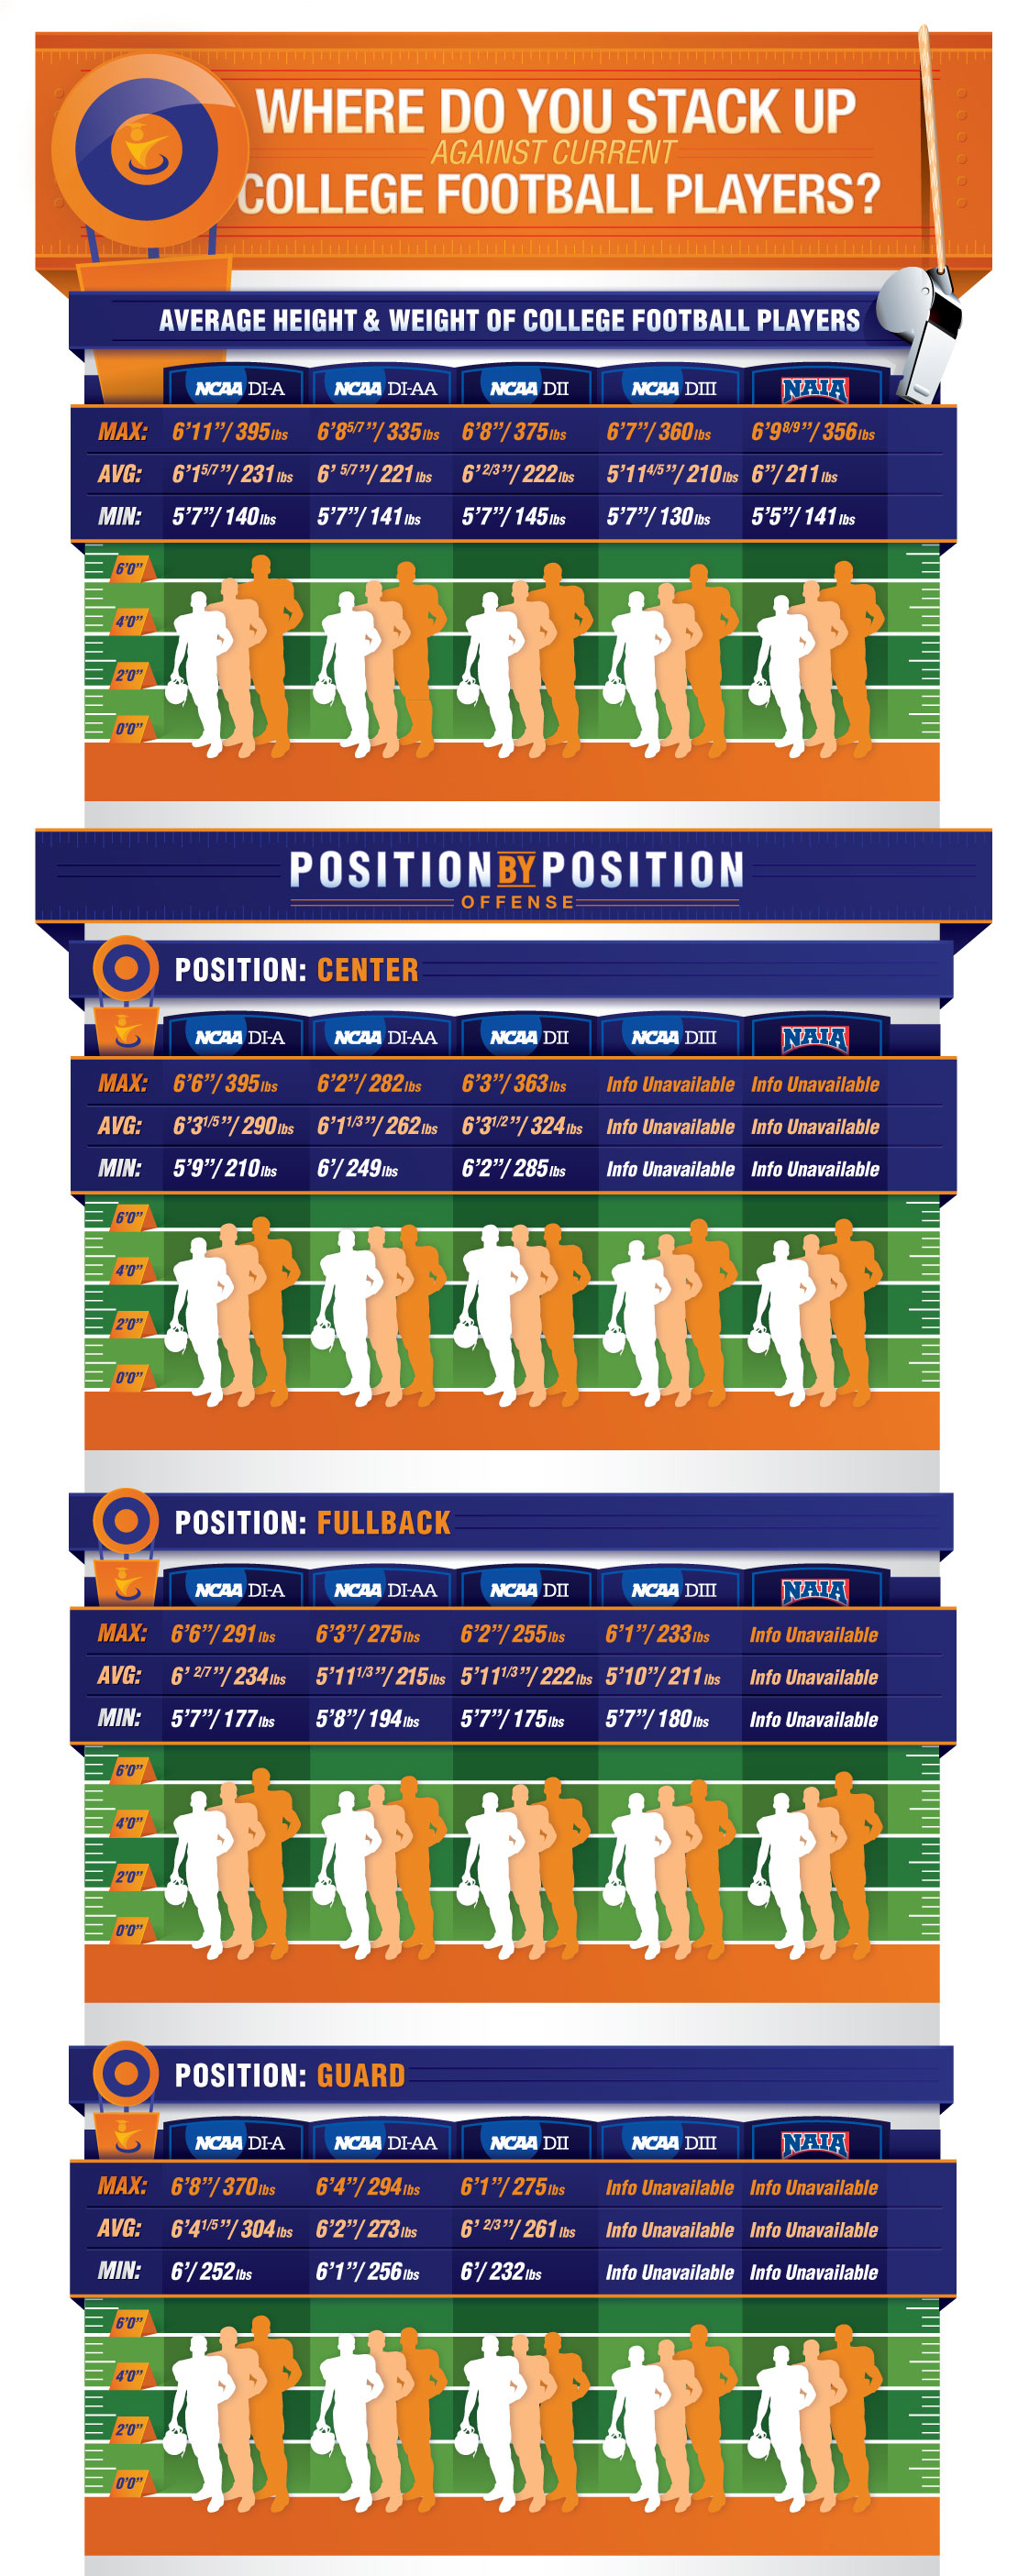 Defensive Positions How Big Do You Need To Be To Play College Football